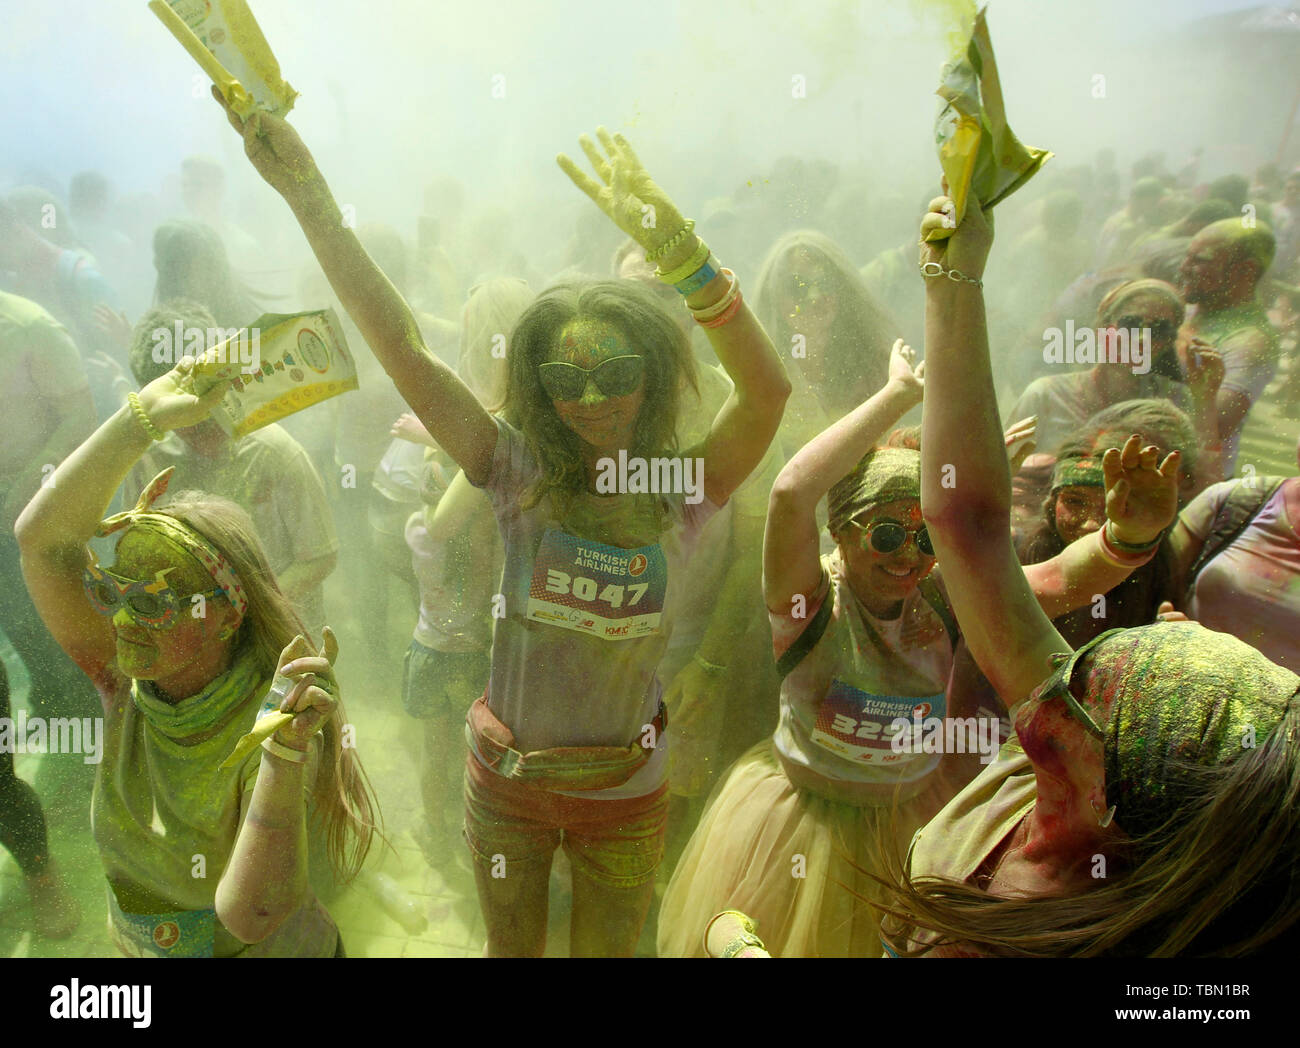 Peoples showered with colours having fun during the event. The Color Run, also known as 'the happiest 5,000 meters on the planet', is an event series and paint race, its first event was in the United States in January 2012 since then the run has spread across the globe leaving a trail of color and happy runners across different continents and countries. The untimed event has no winners or prizes, but runners are showered with colored powder, made of food-grade corn starch, at stations along the run. In Ukrainian capital the first time Kyiv Color Run started in 2014. - Stock Image